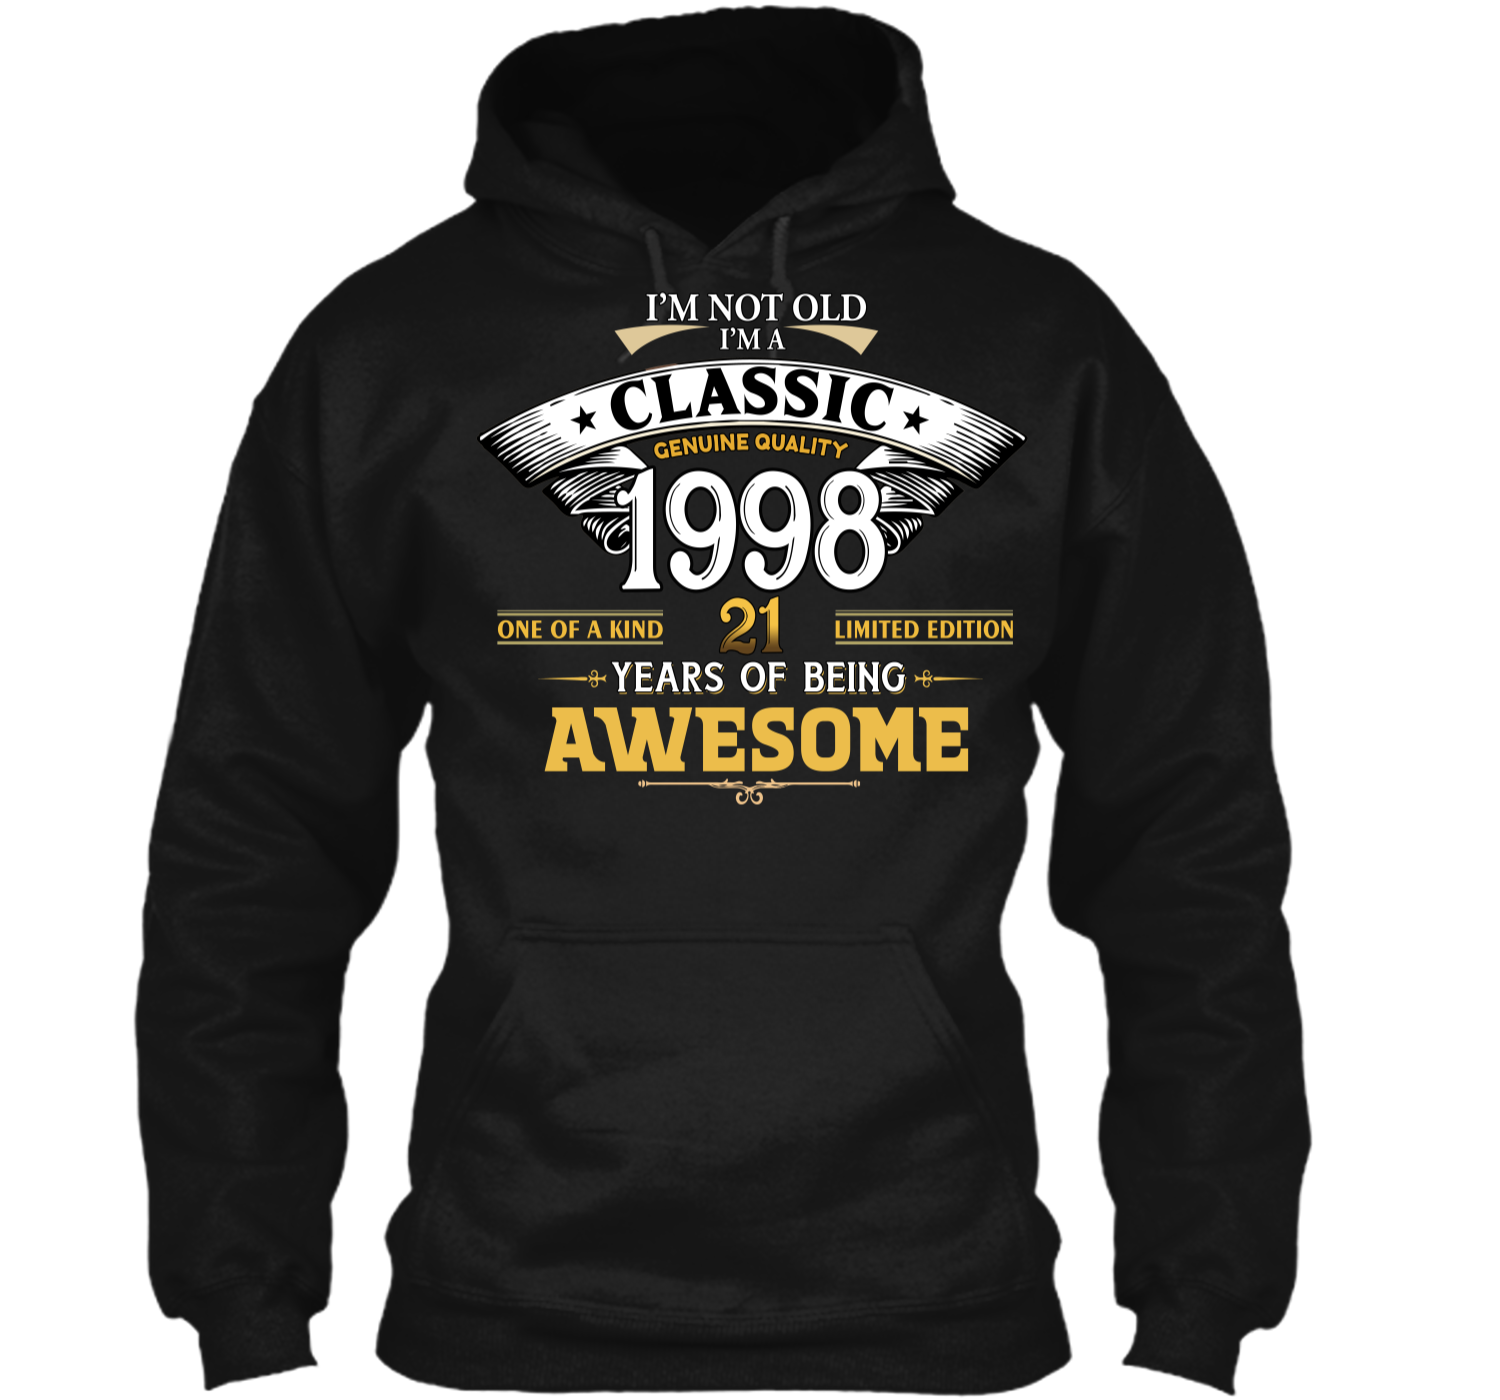 Classic Funny 1998 21st Birthday T Shirts Years Of Awesome Pullover Hoodie 8 Oz